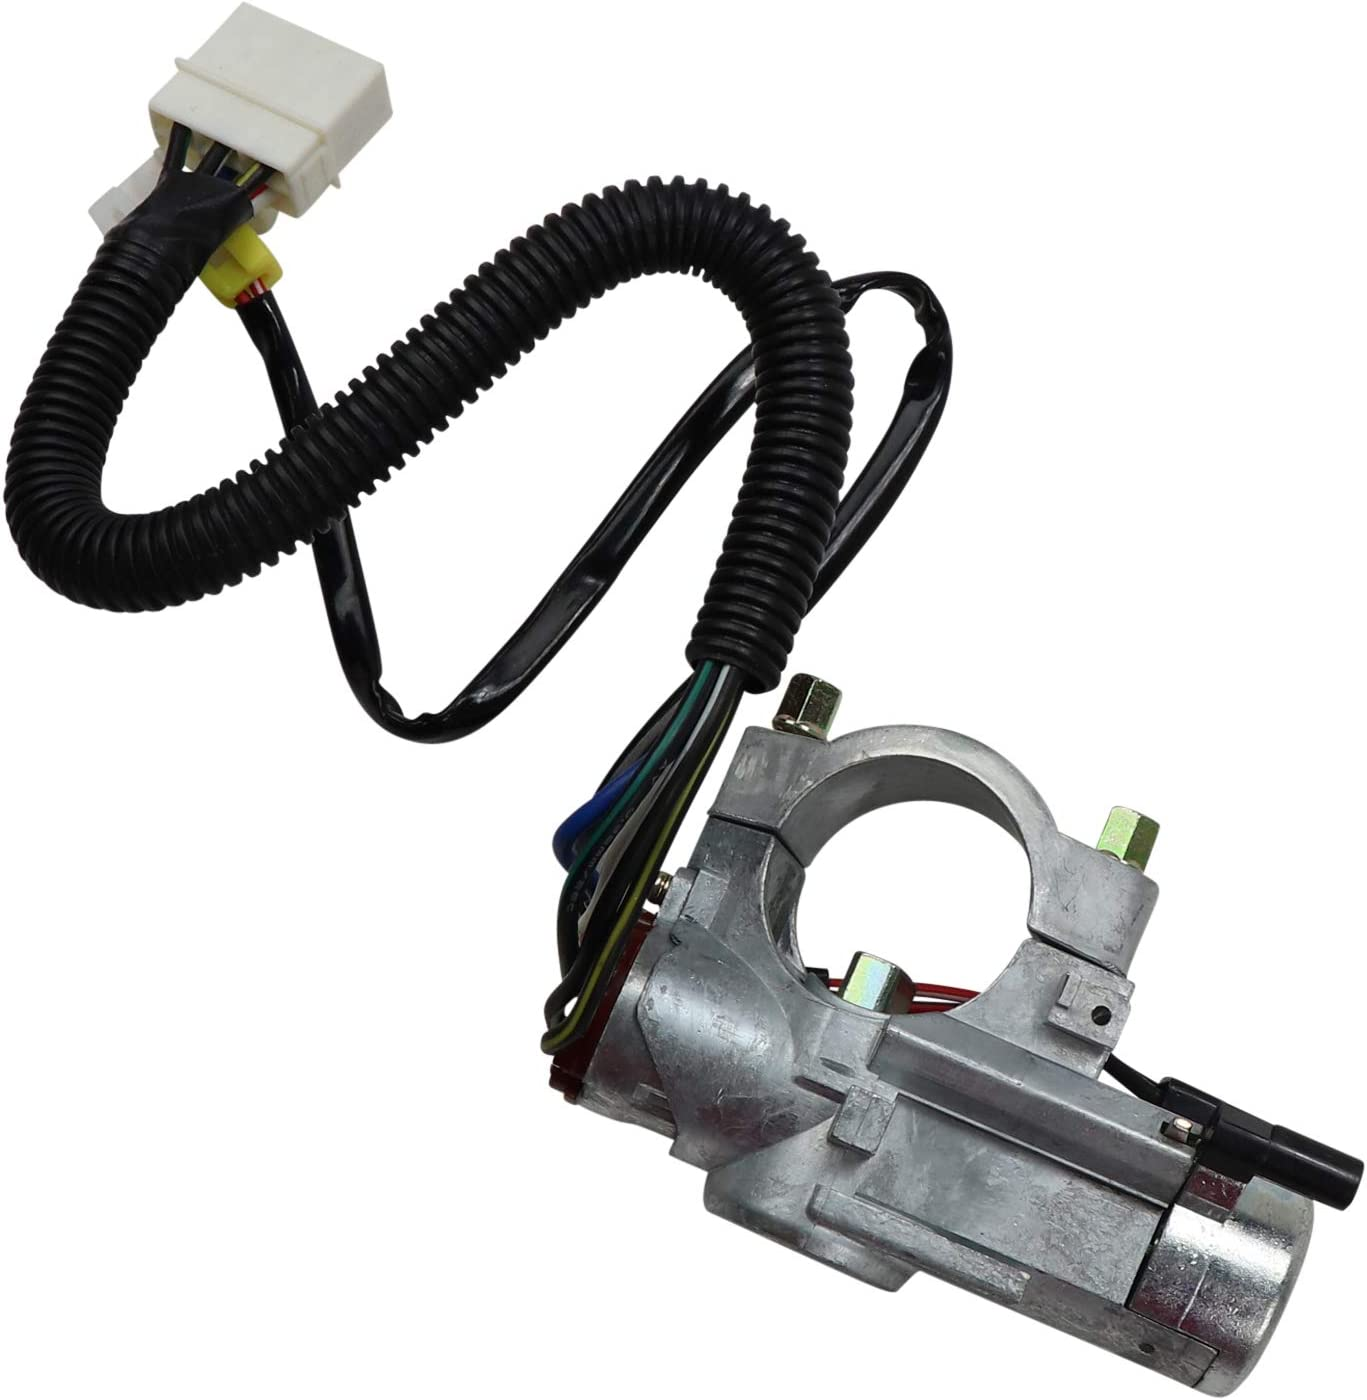 Beck Arnley 201-2351 Ignition Lock and Cylinder Assembly Switch